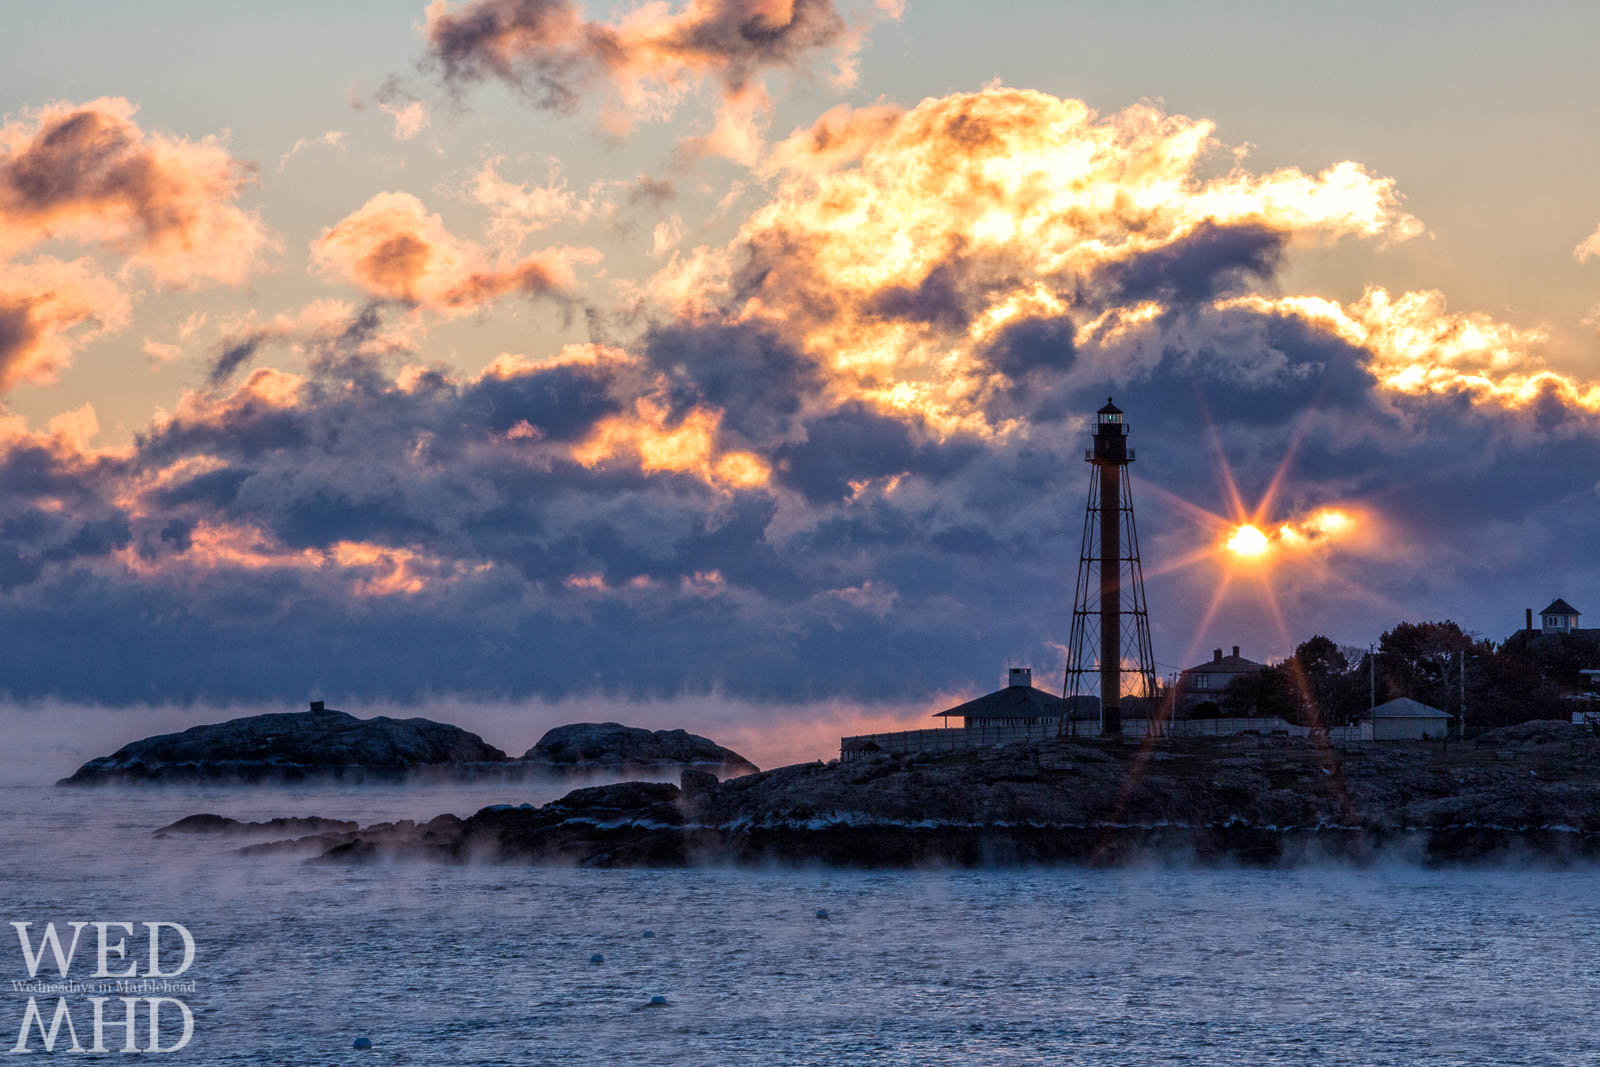 Sea smoke on the water is lit by a fire in the sky as clouds break at dawn over Marblehead Light